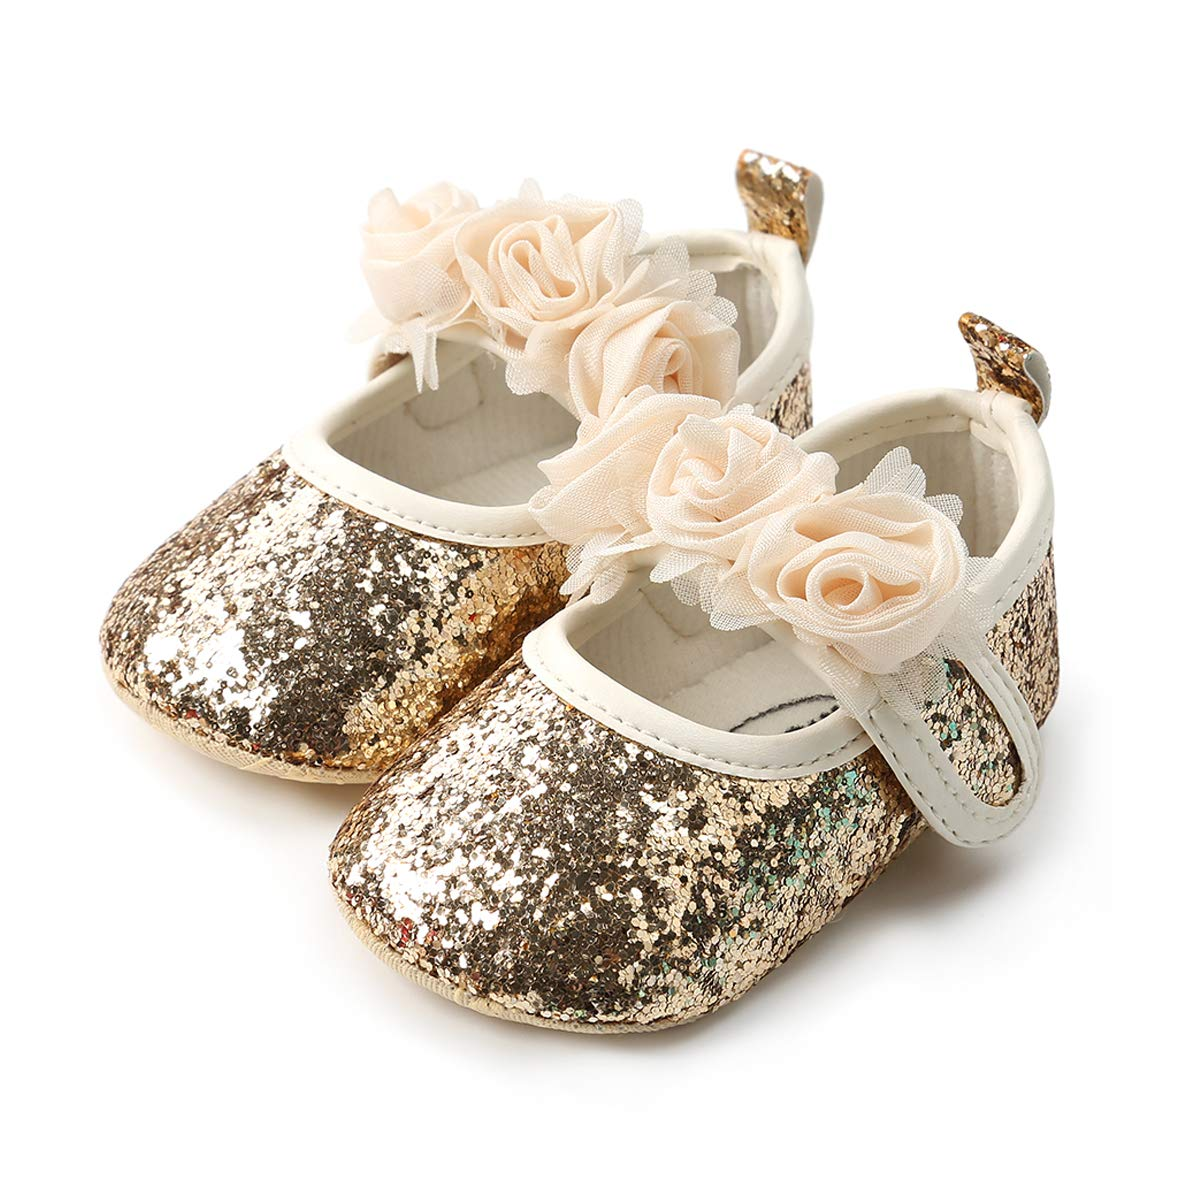 QGAKAGO Infant Baby Girls Princess Patent-Leather Bowknot Soft Sole Mary Jane Shoes OJ-RWVD-YUH3